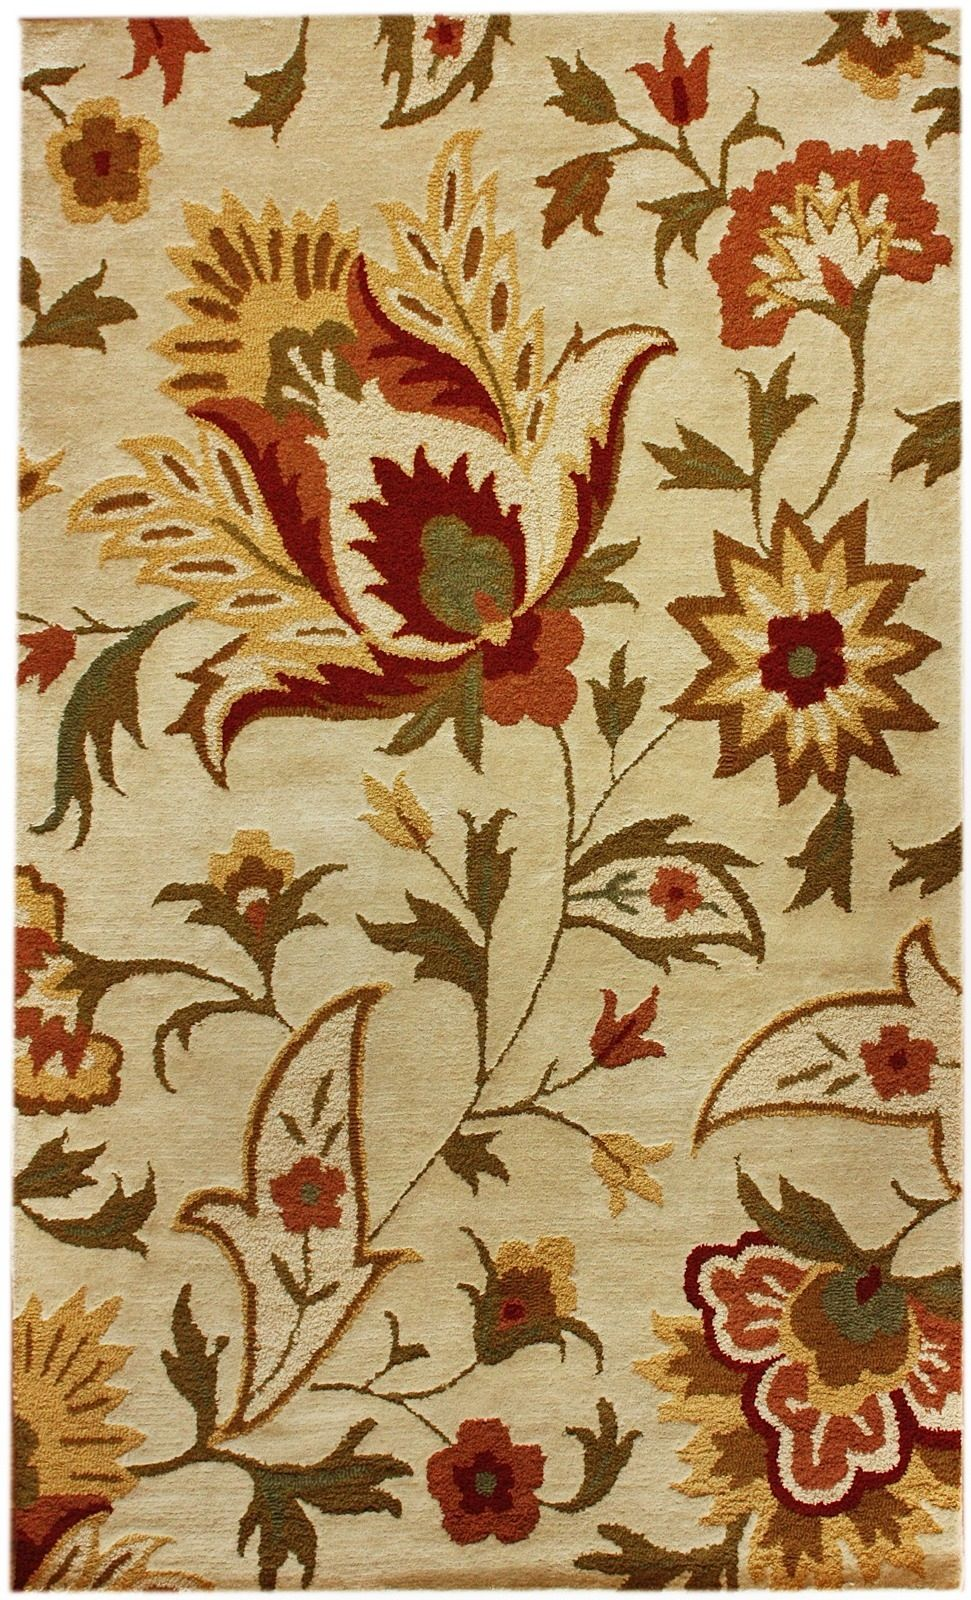 nuloom decor country & floral area rug collection